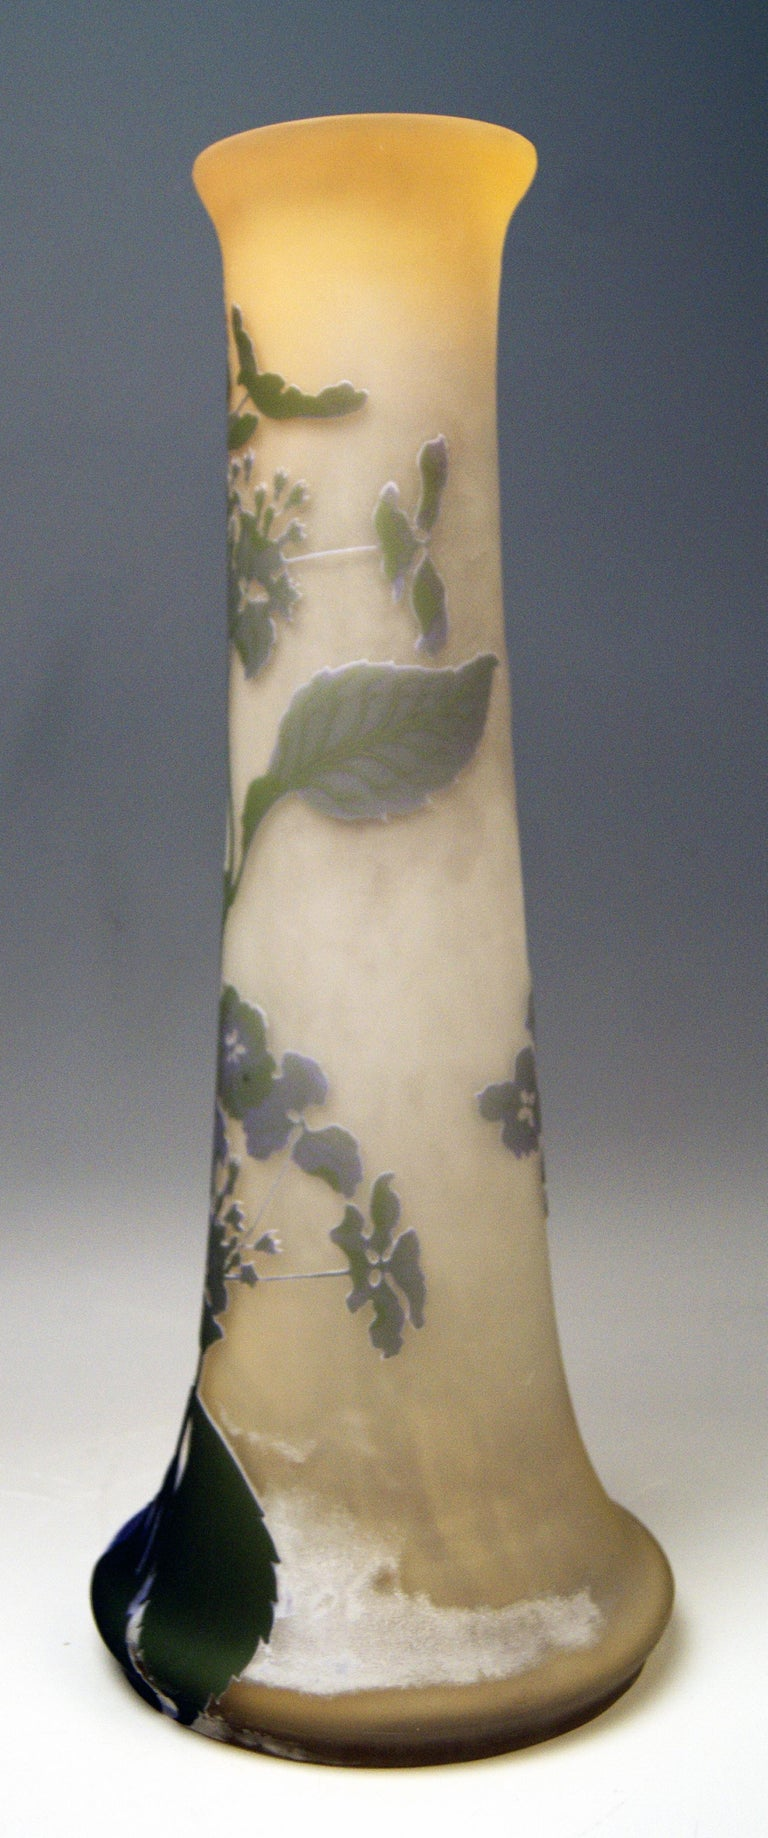 Art Nouveau Tall Stalky Vase by Gallé  Manufactory:  Émile Gallé / France, Nancy, Lorraine made circa 1904-1906  Technique of manufacture: Cameo glass and etched (built up with different layers and cut back with acid to reveal beautiful